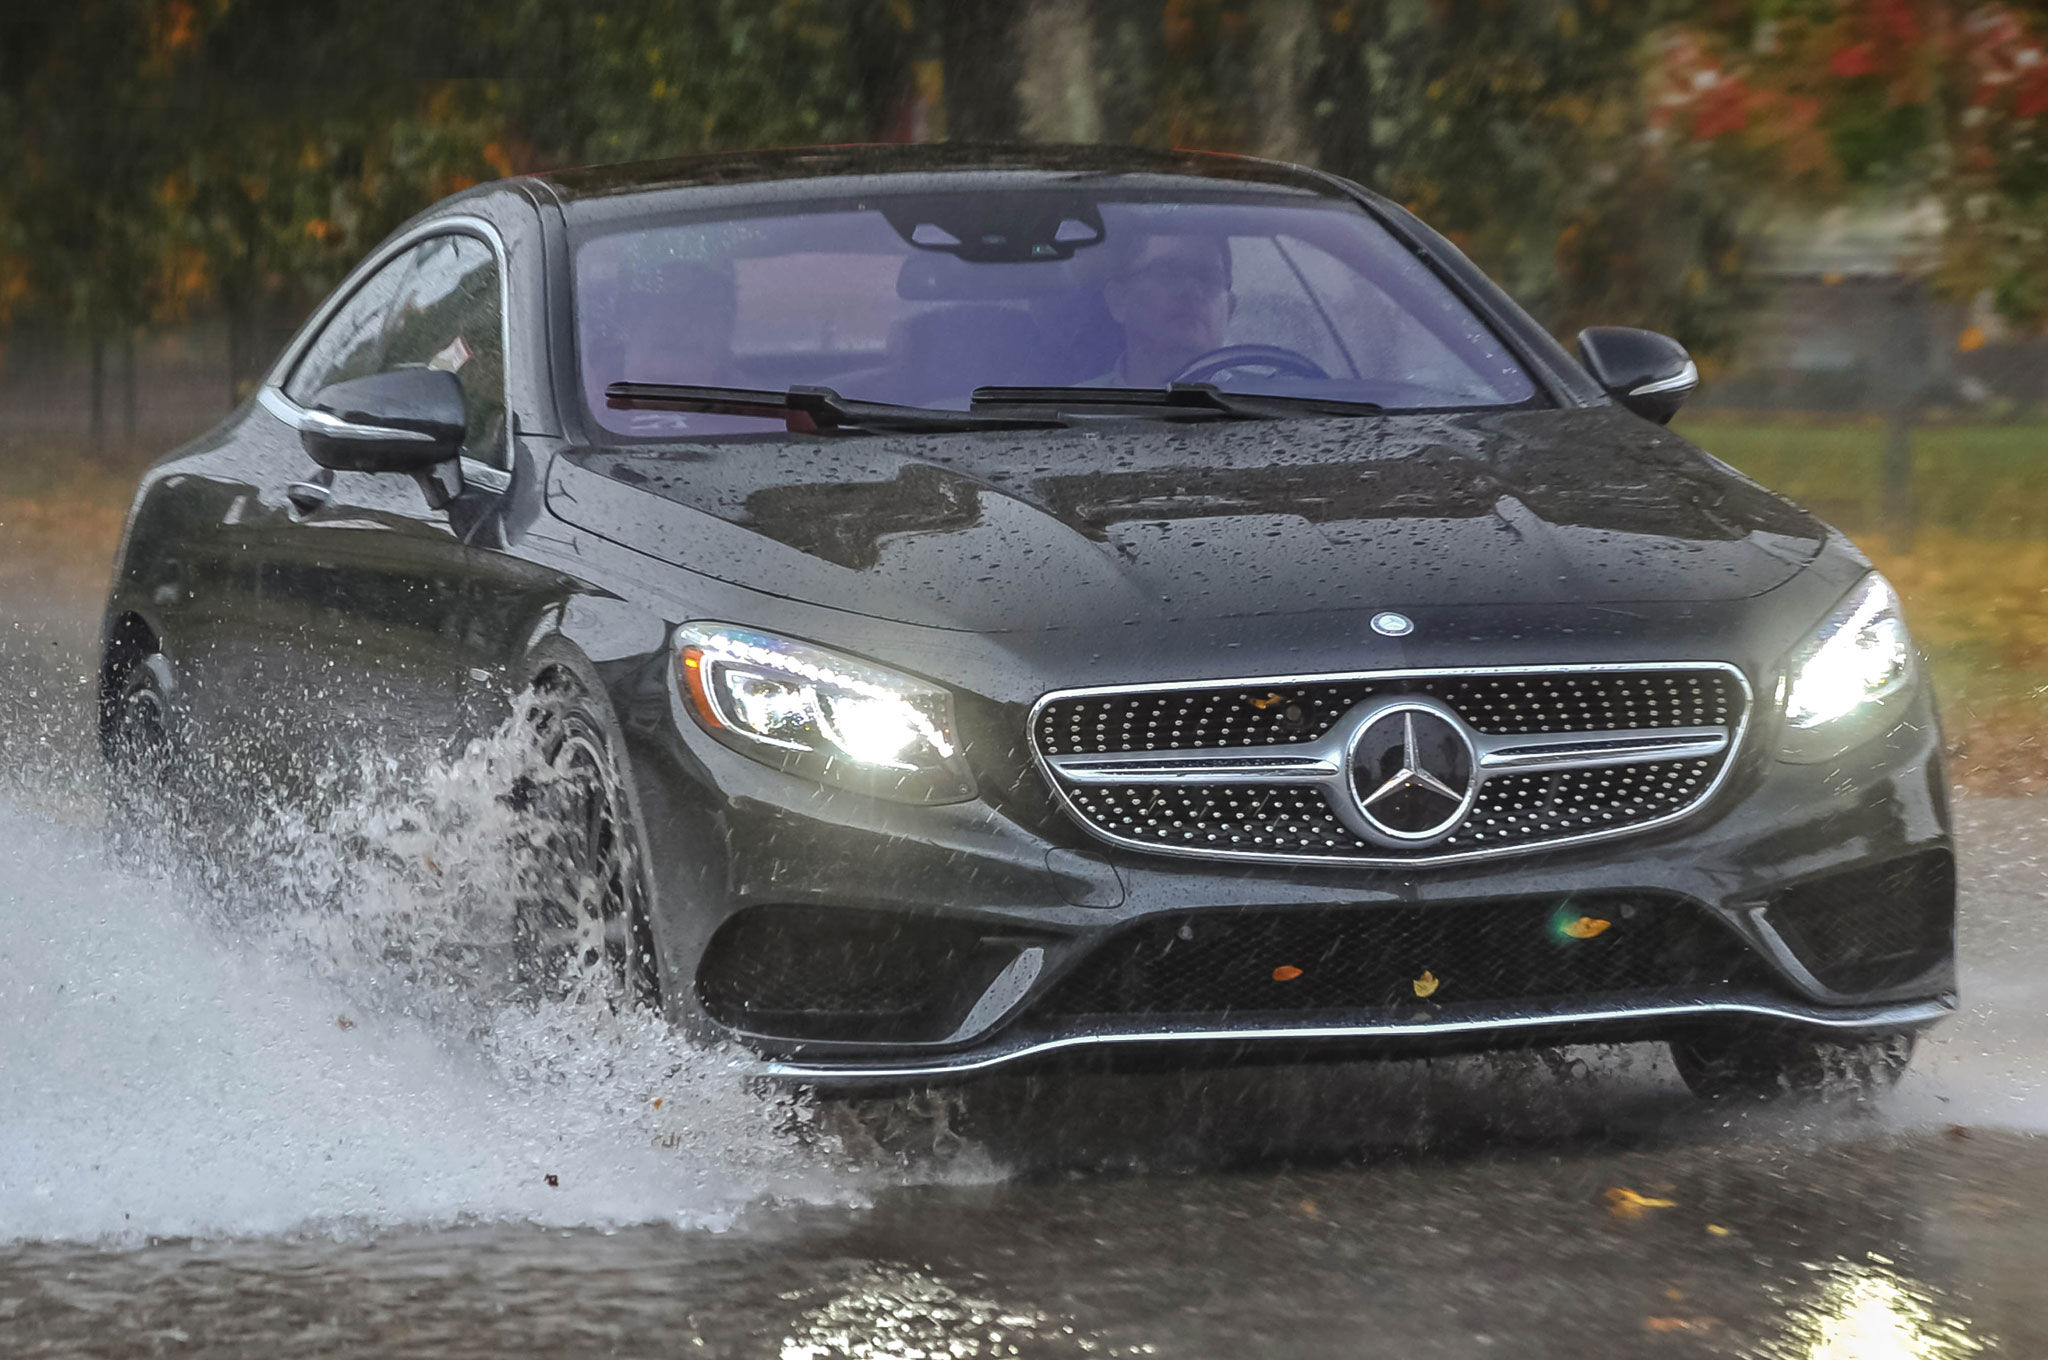 http://st.automobilemag.com/uploads/sites/11/2015/07/2015-Mercedes-Benz-S550-coupe-front-three-quarter-view-in-motion-3.jpg